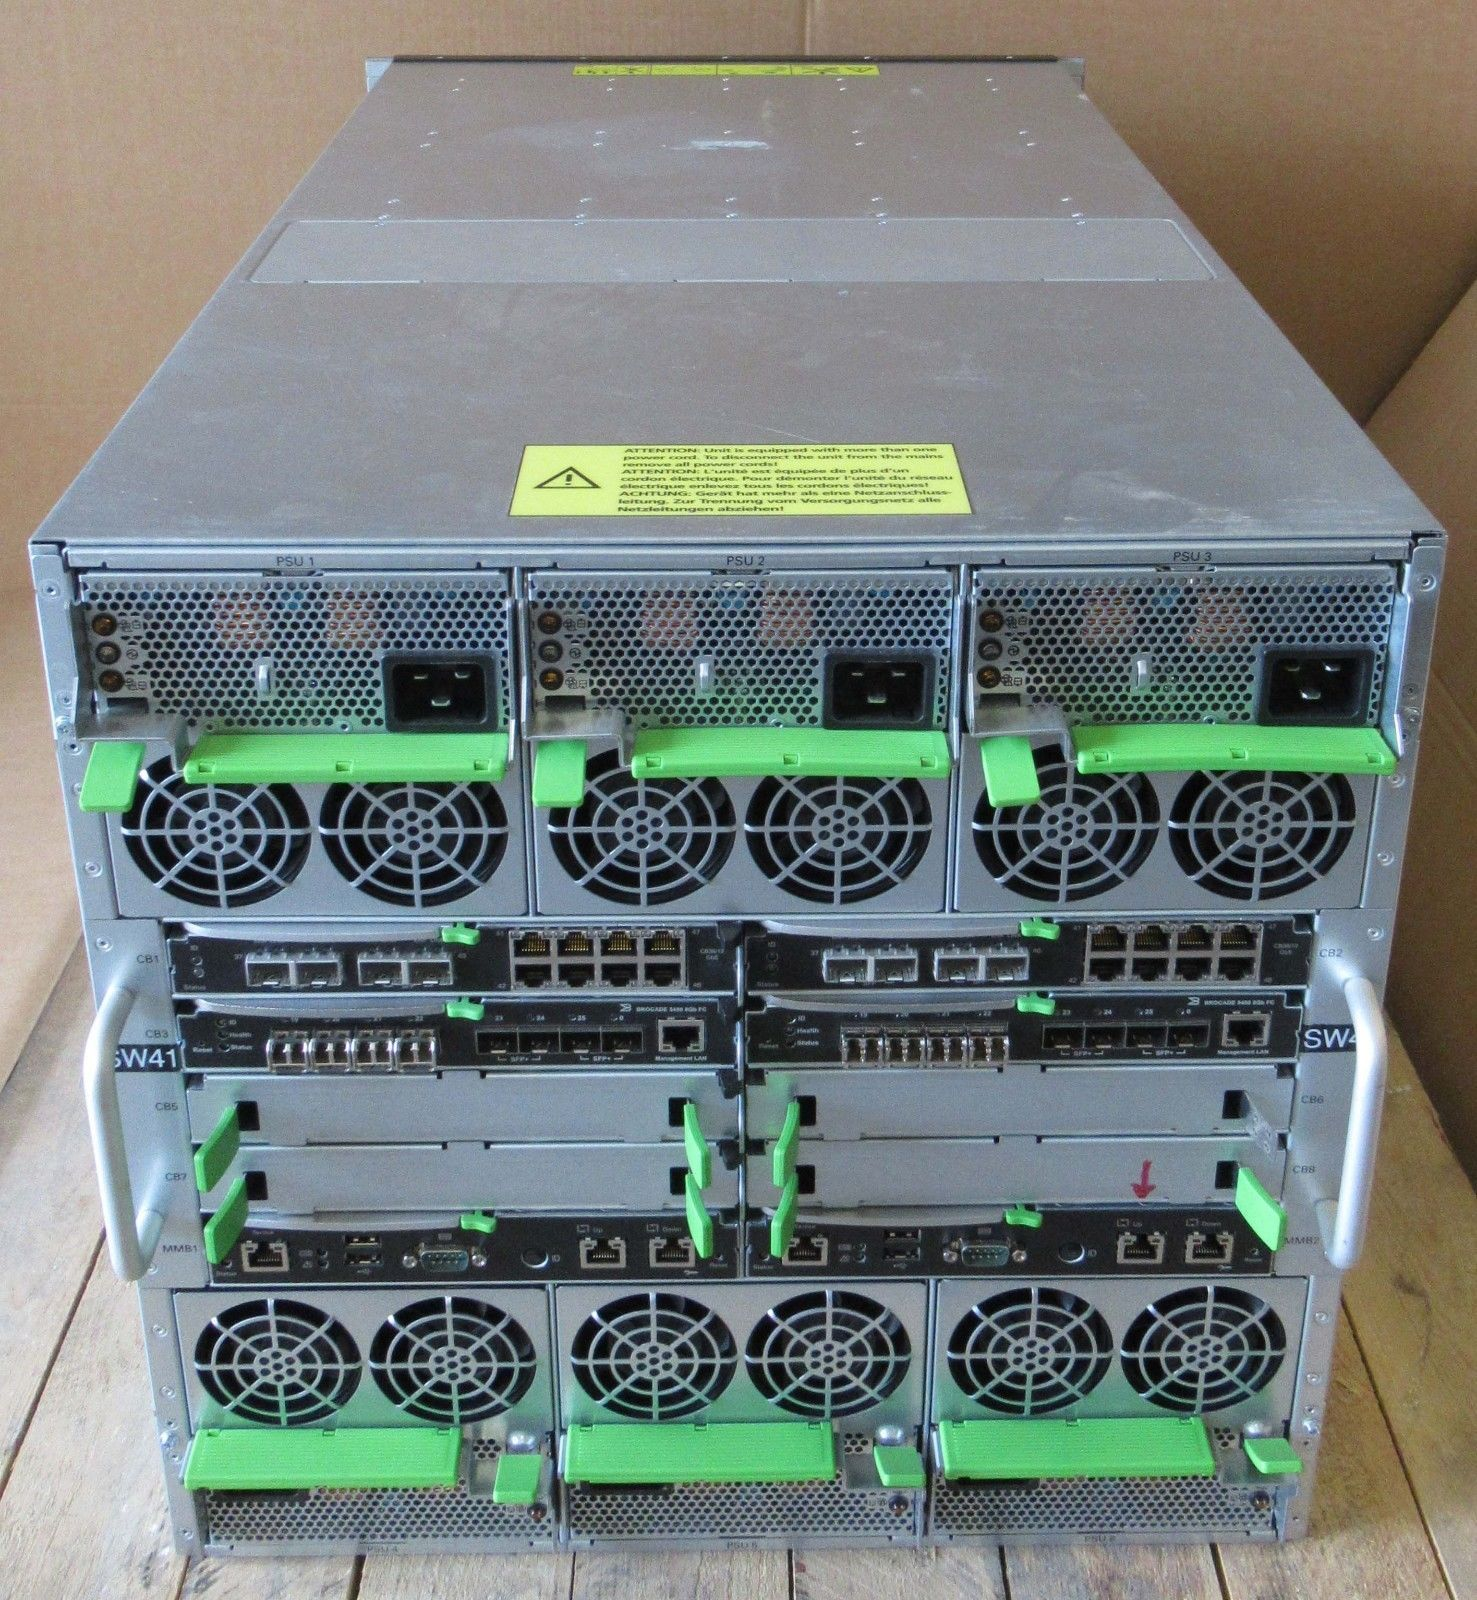 Fujitsu Primergy Bx900 S2 Blade Chassis 18 Slot 13x Blades S26361 Sfp Brocade 57 1000117 01 8gb Up To 10gb K1421